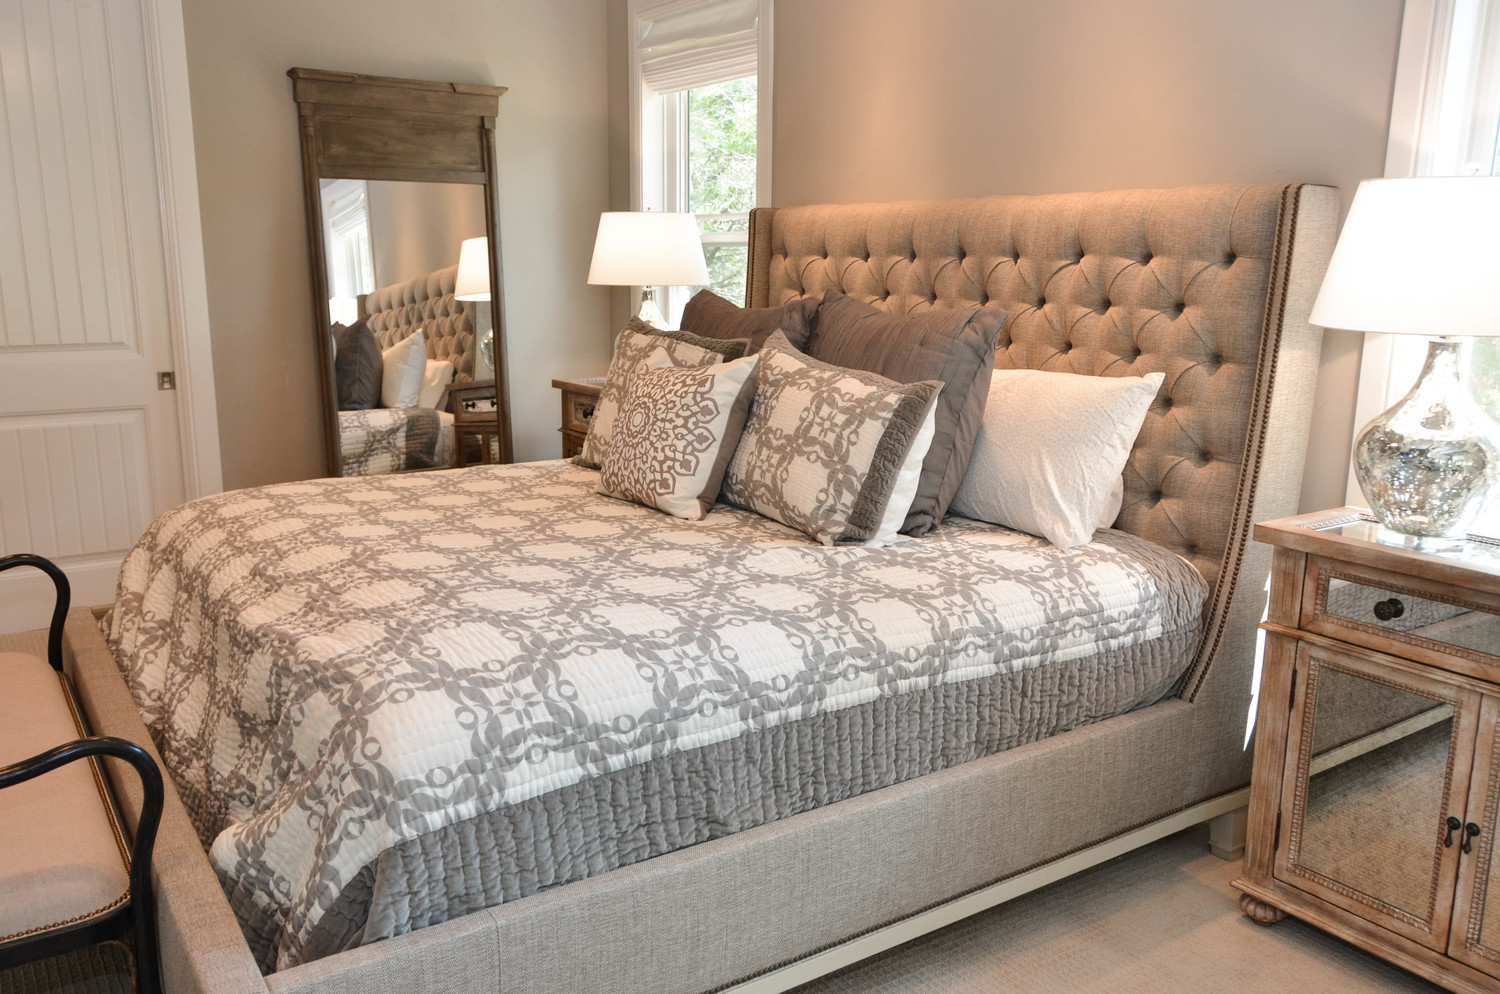 Layered neutrals in a master bedroom retreat. Featuring a taupe Vanguard Cleo tufted bed